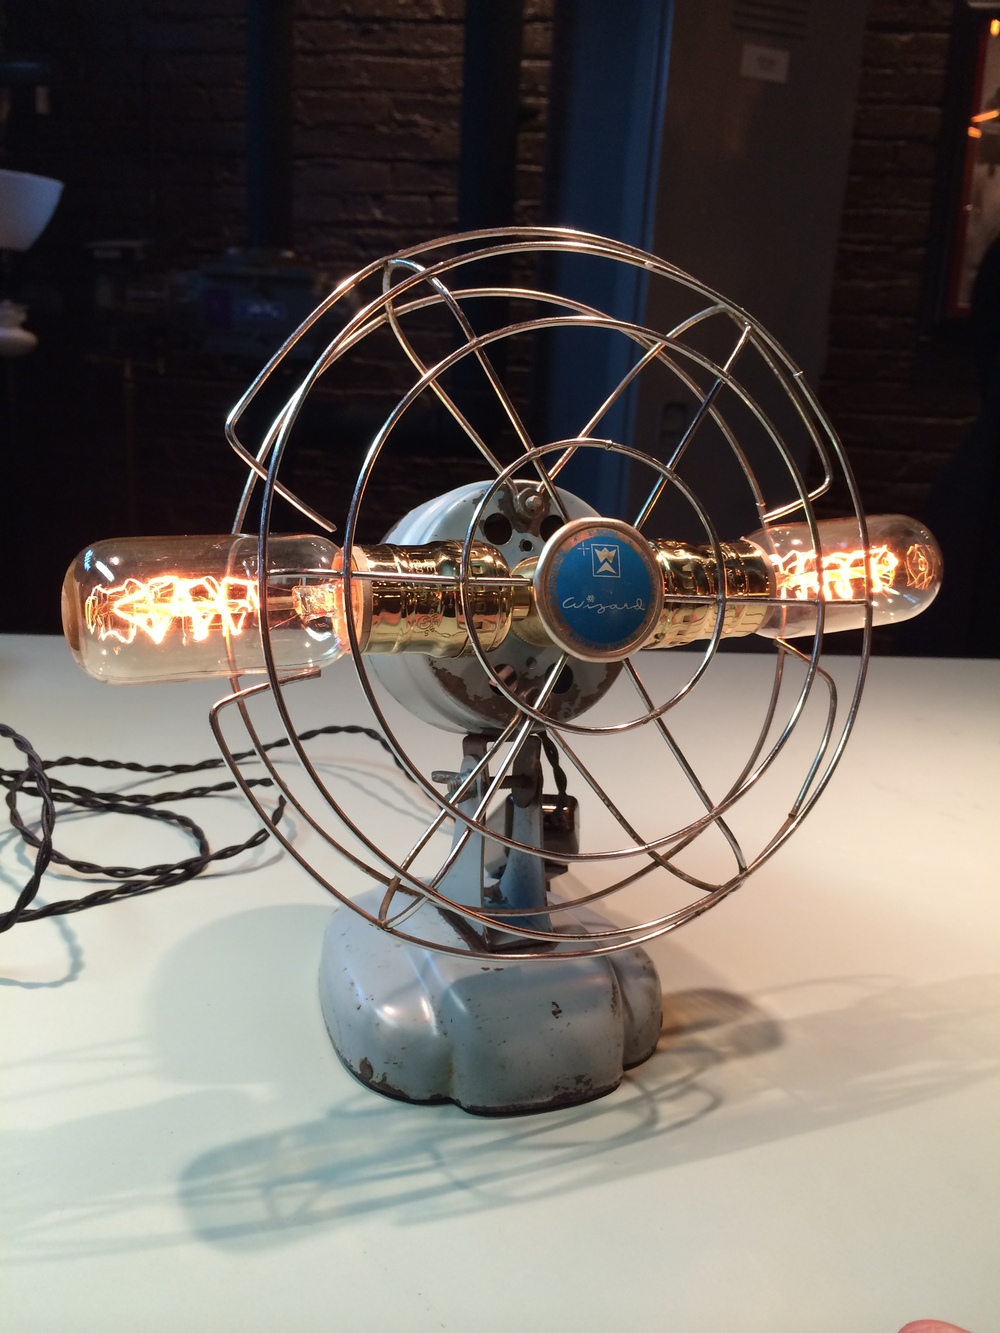 1950's Wizard Vintage Fan Lamp - $120 SOLD